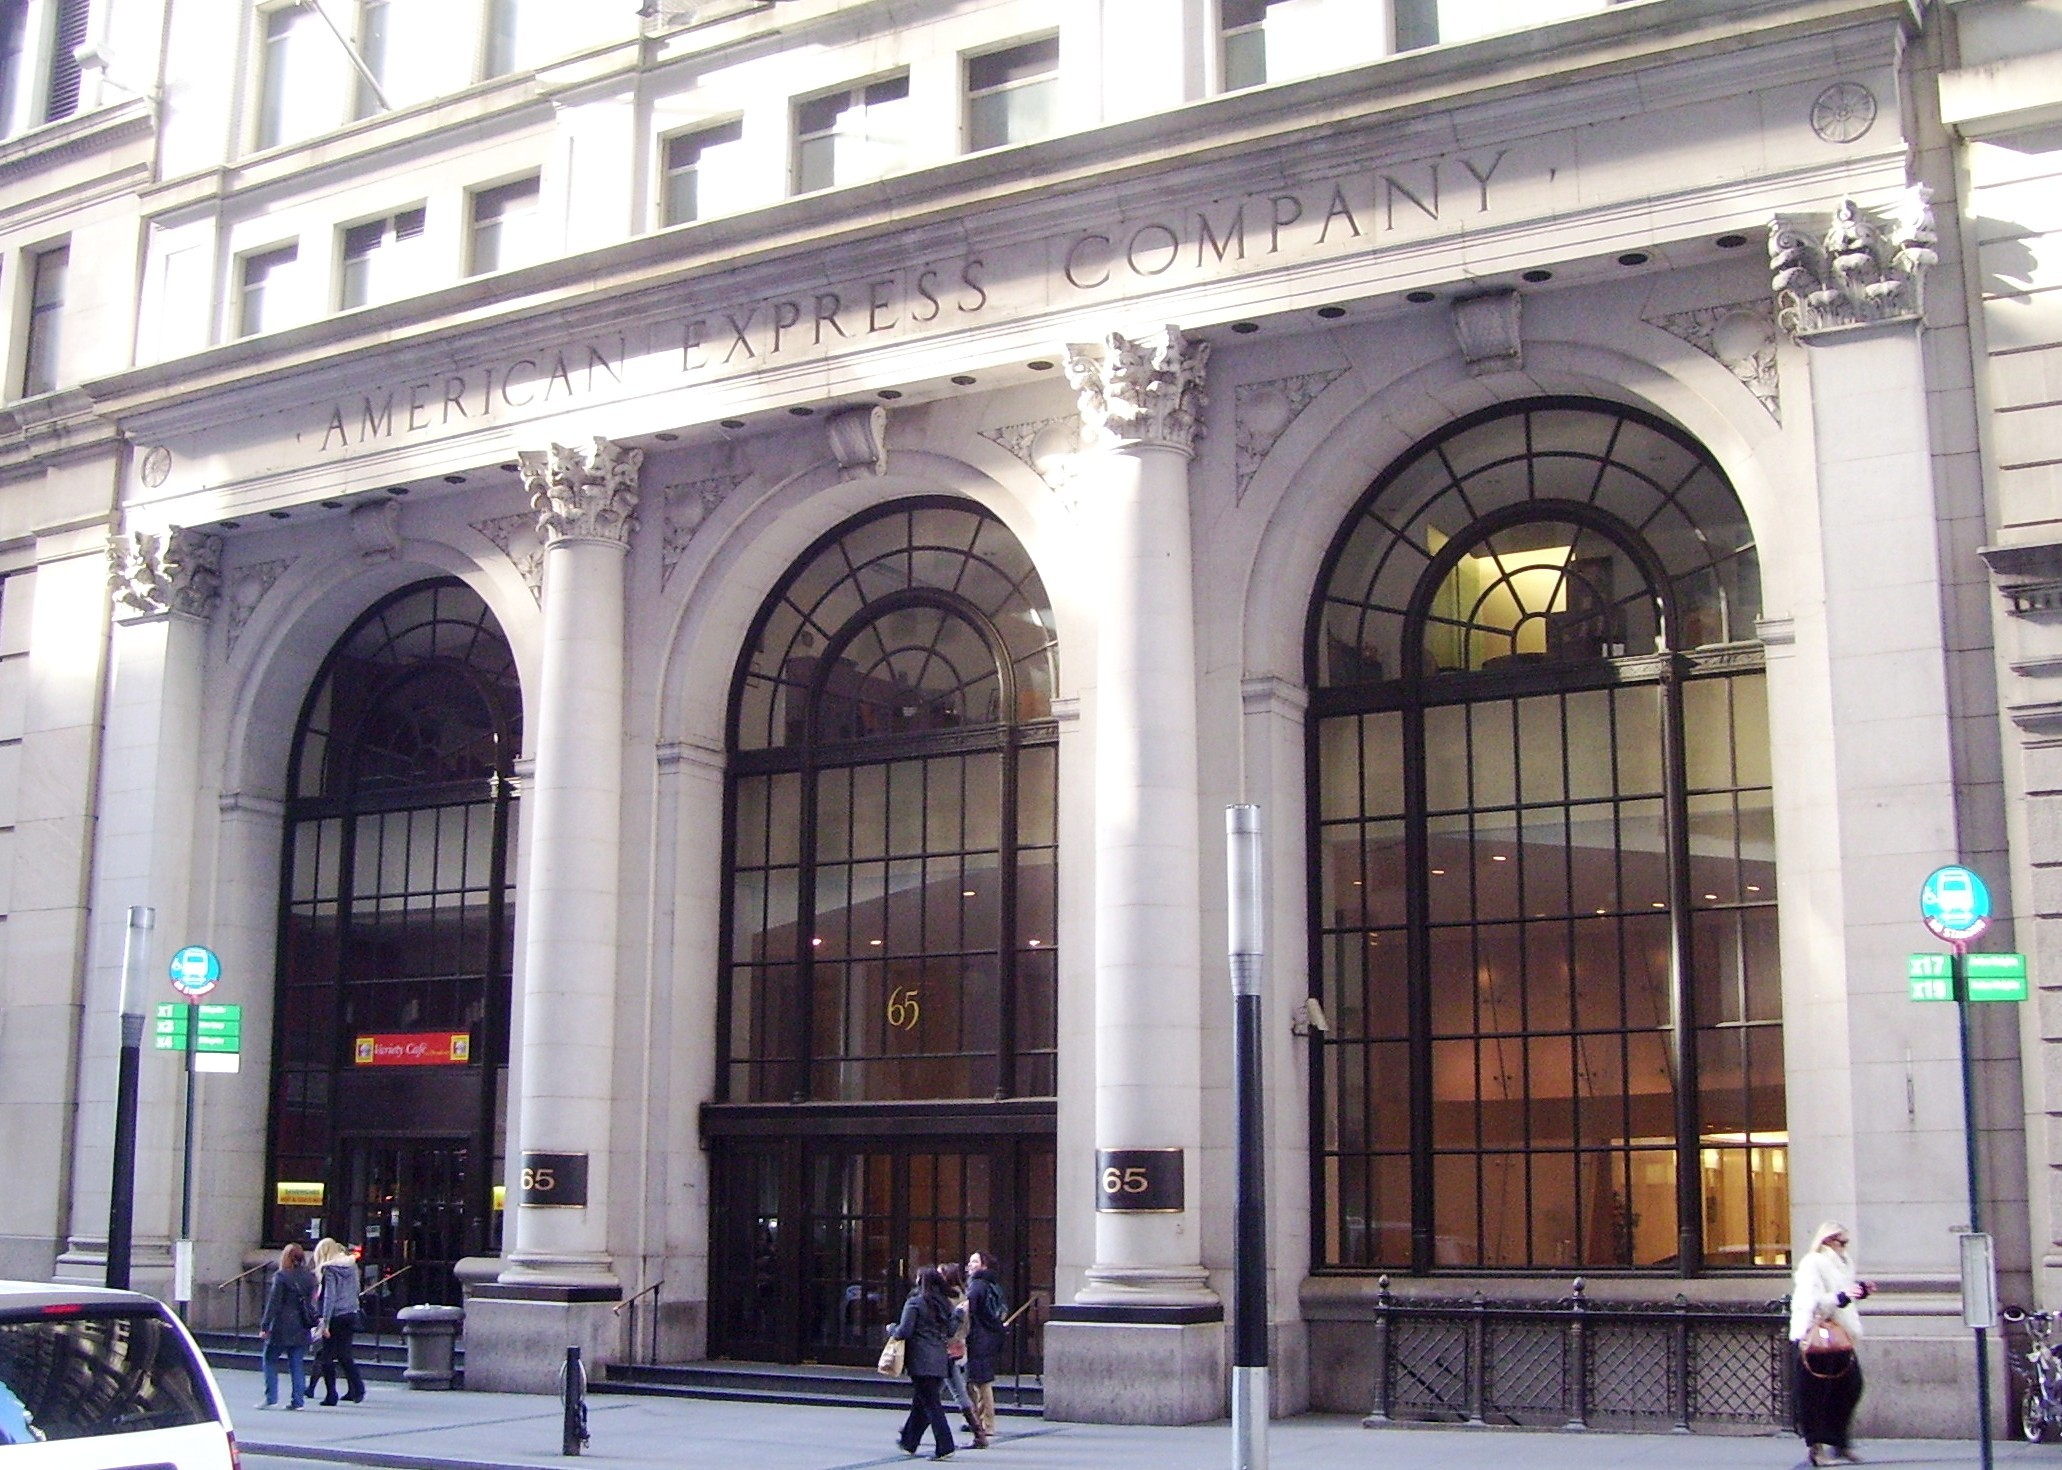 File:American Express Company Building 65 Broadway entrance.jpg